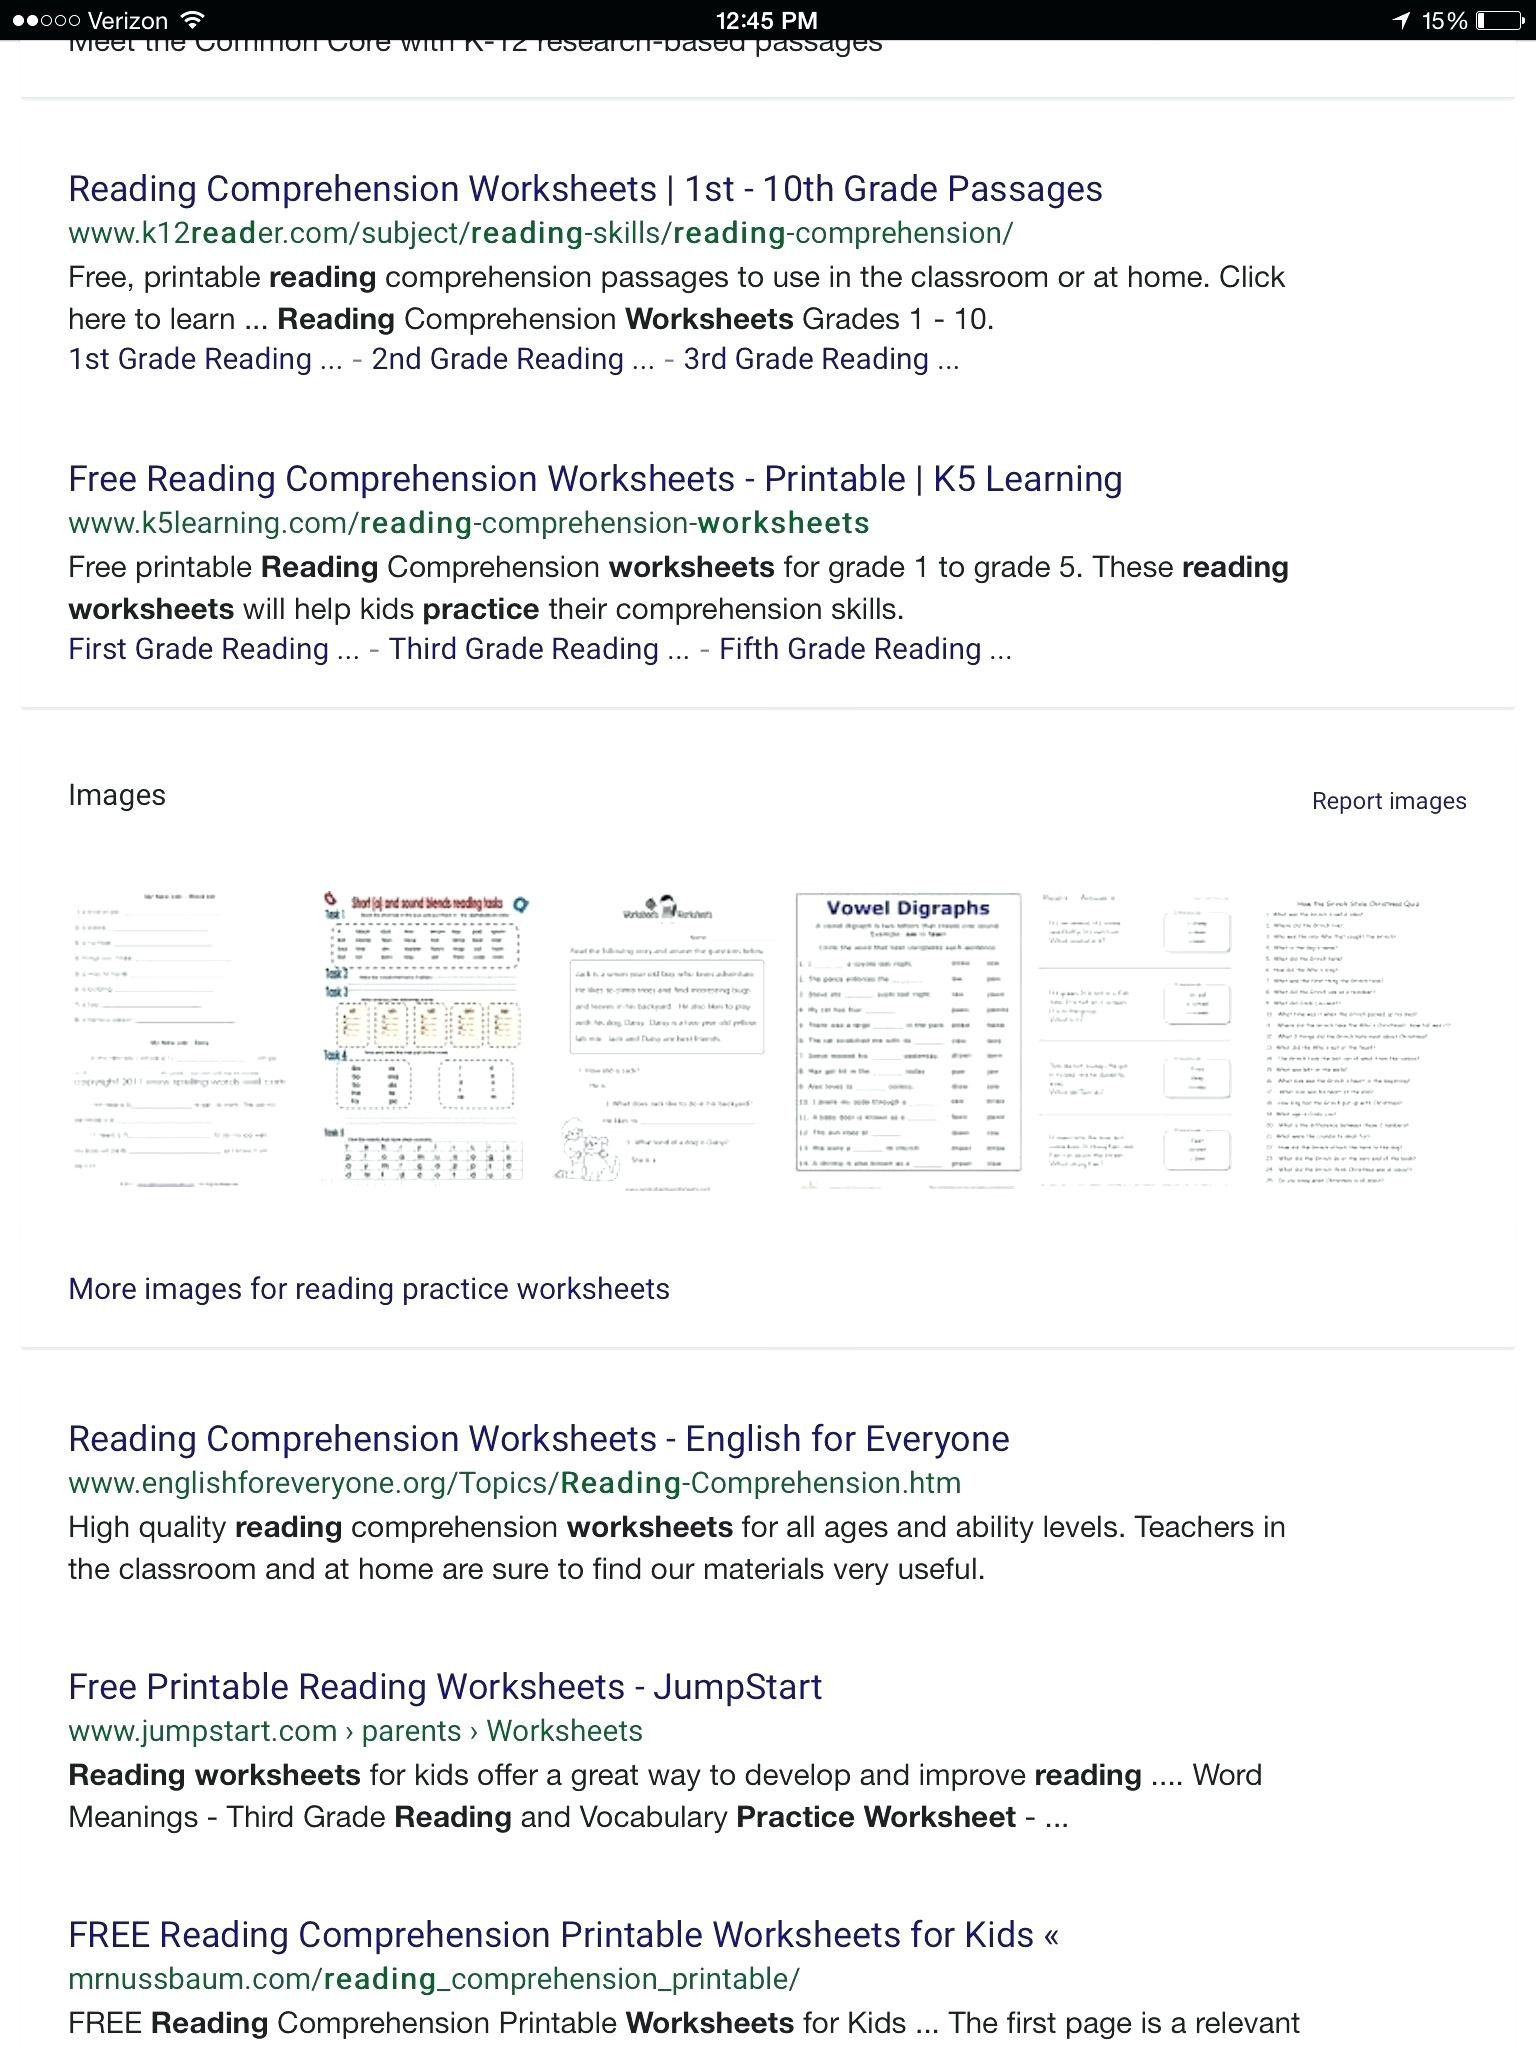 - 4 Vocabulary Worksheets Fifth Grade 5 In 2020 Reading Worksheets